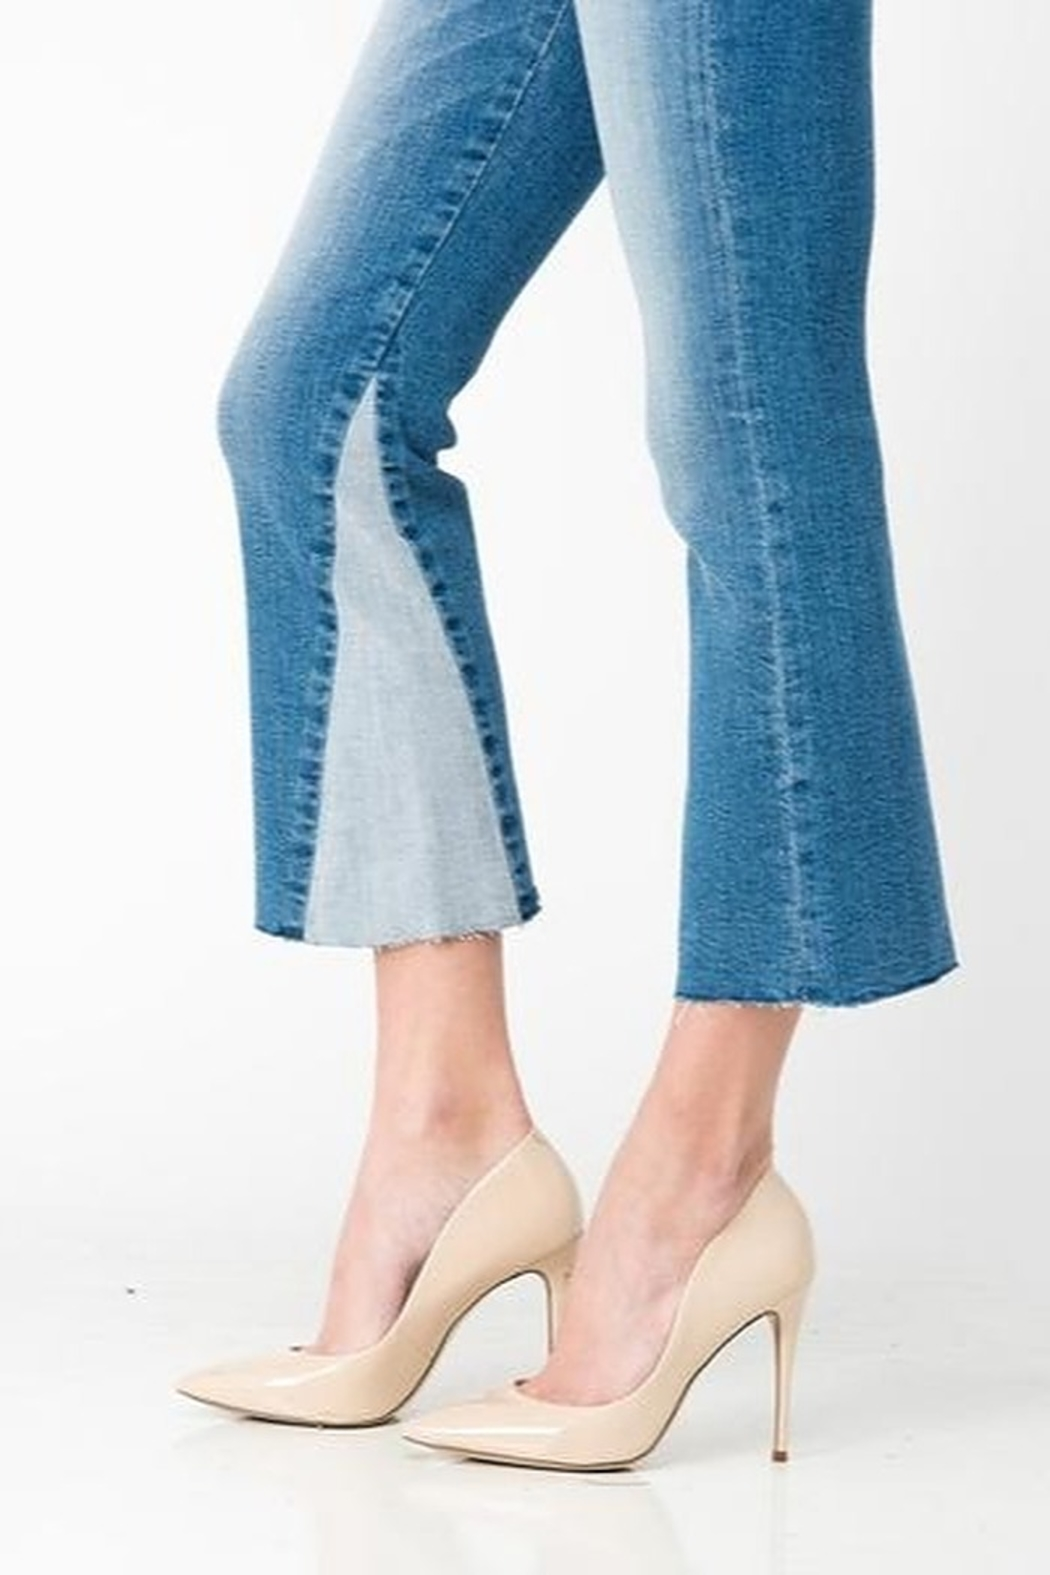 Sneak Peek Cropped Flare Two Toned Jeans - Back Cropped Image